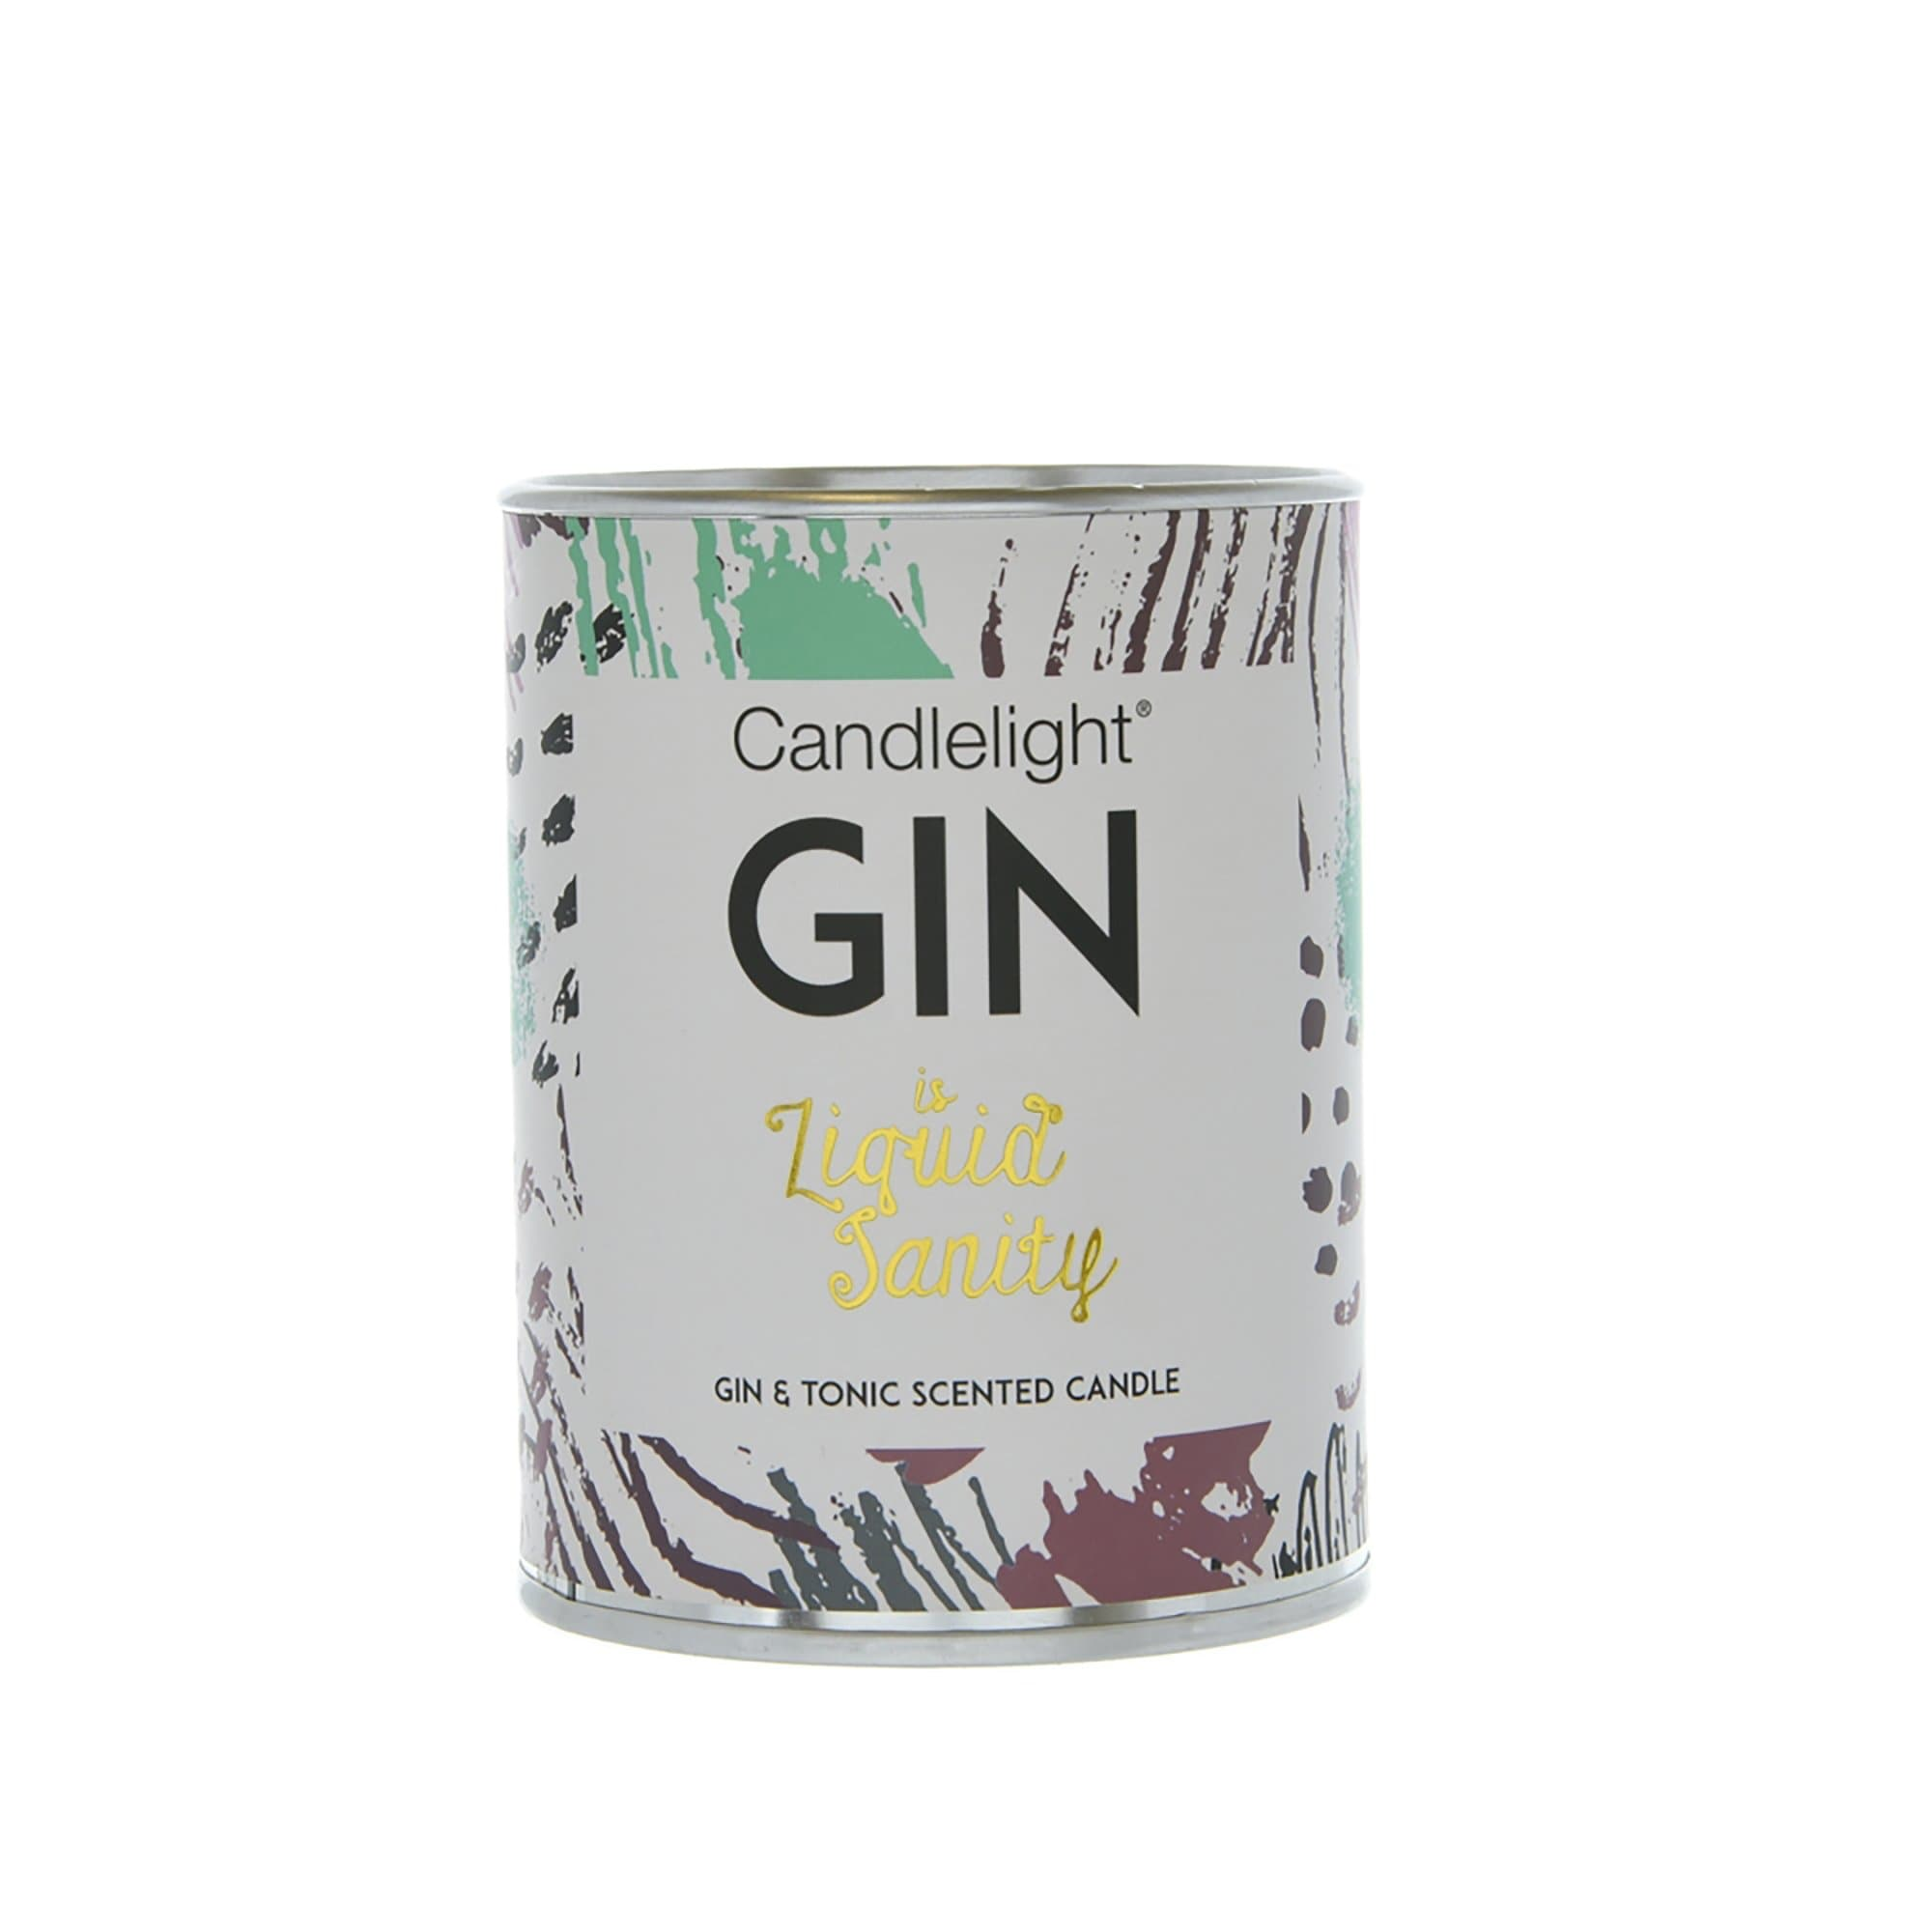 Candlelight Gin is Liquid Sanity Large Tin Candle with Ring Pull top Gin and Tonic Scent 150g 6PK